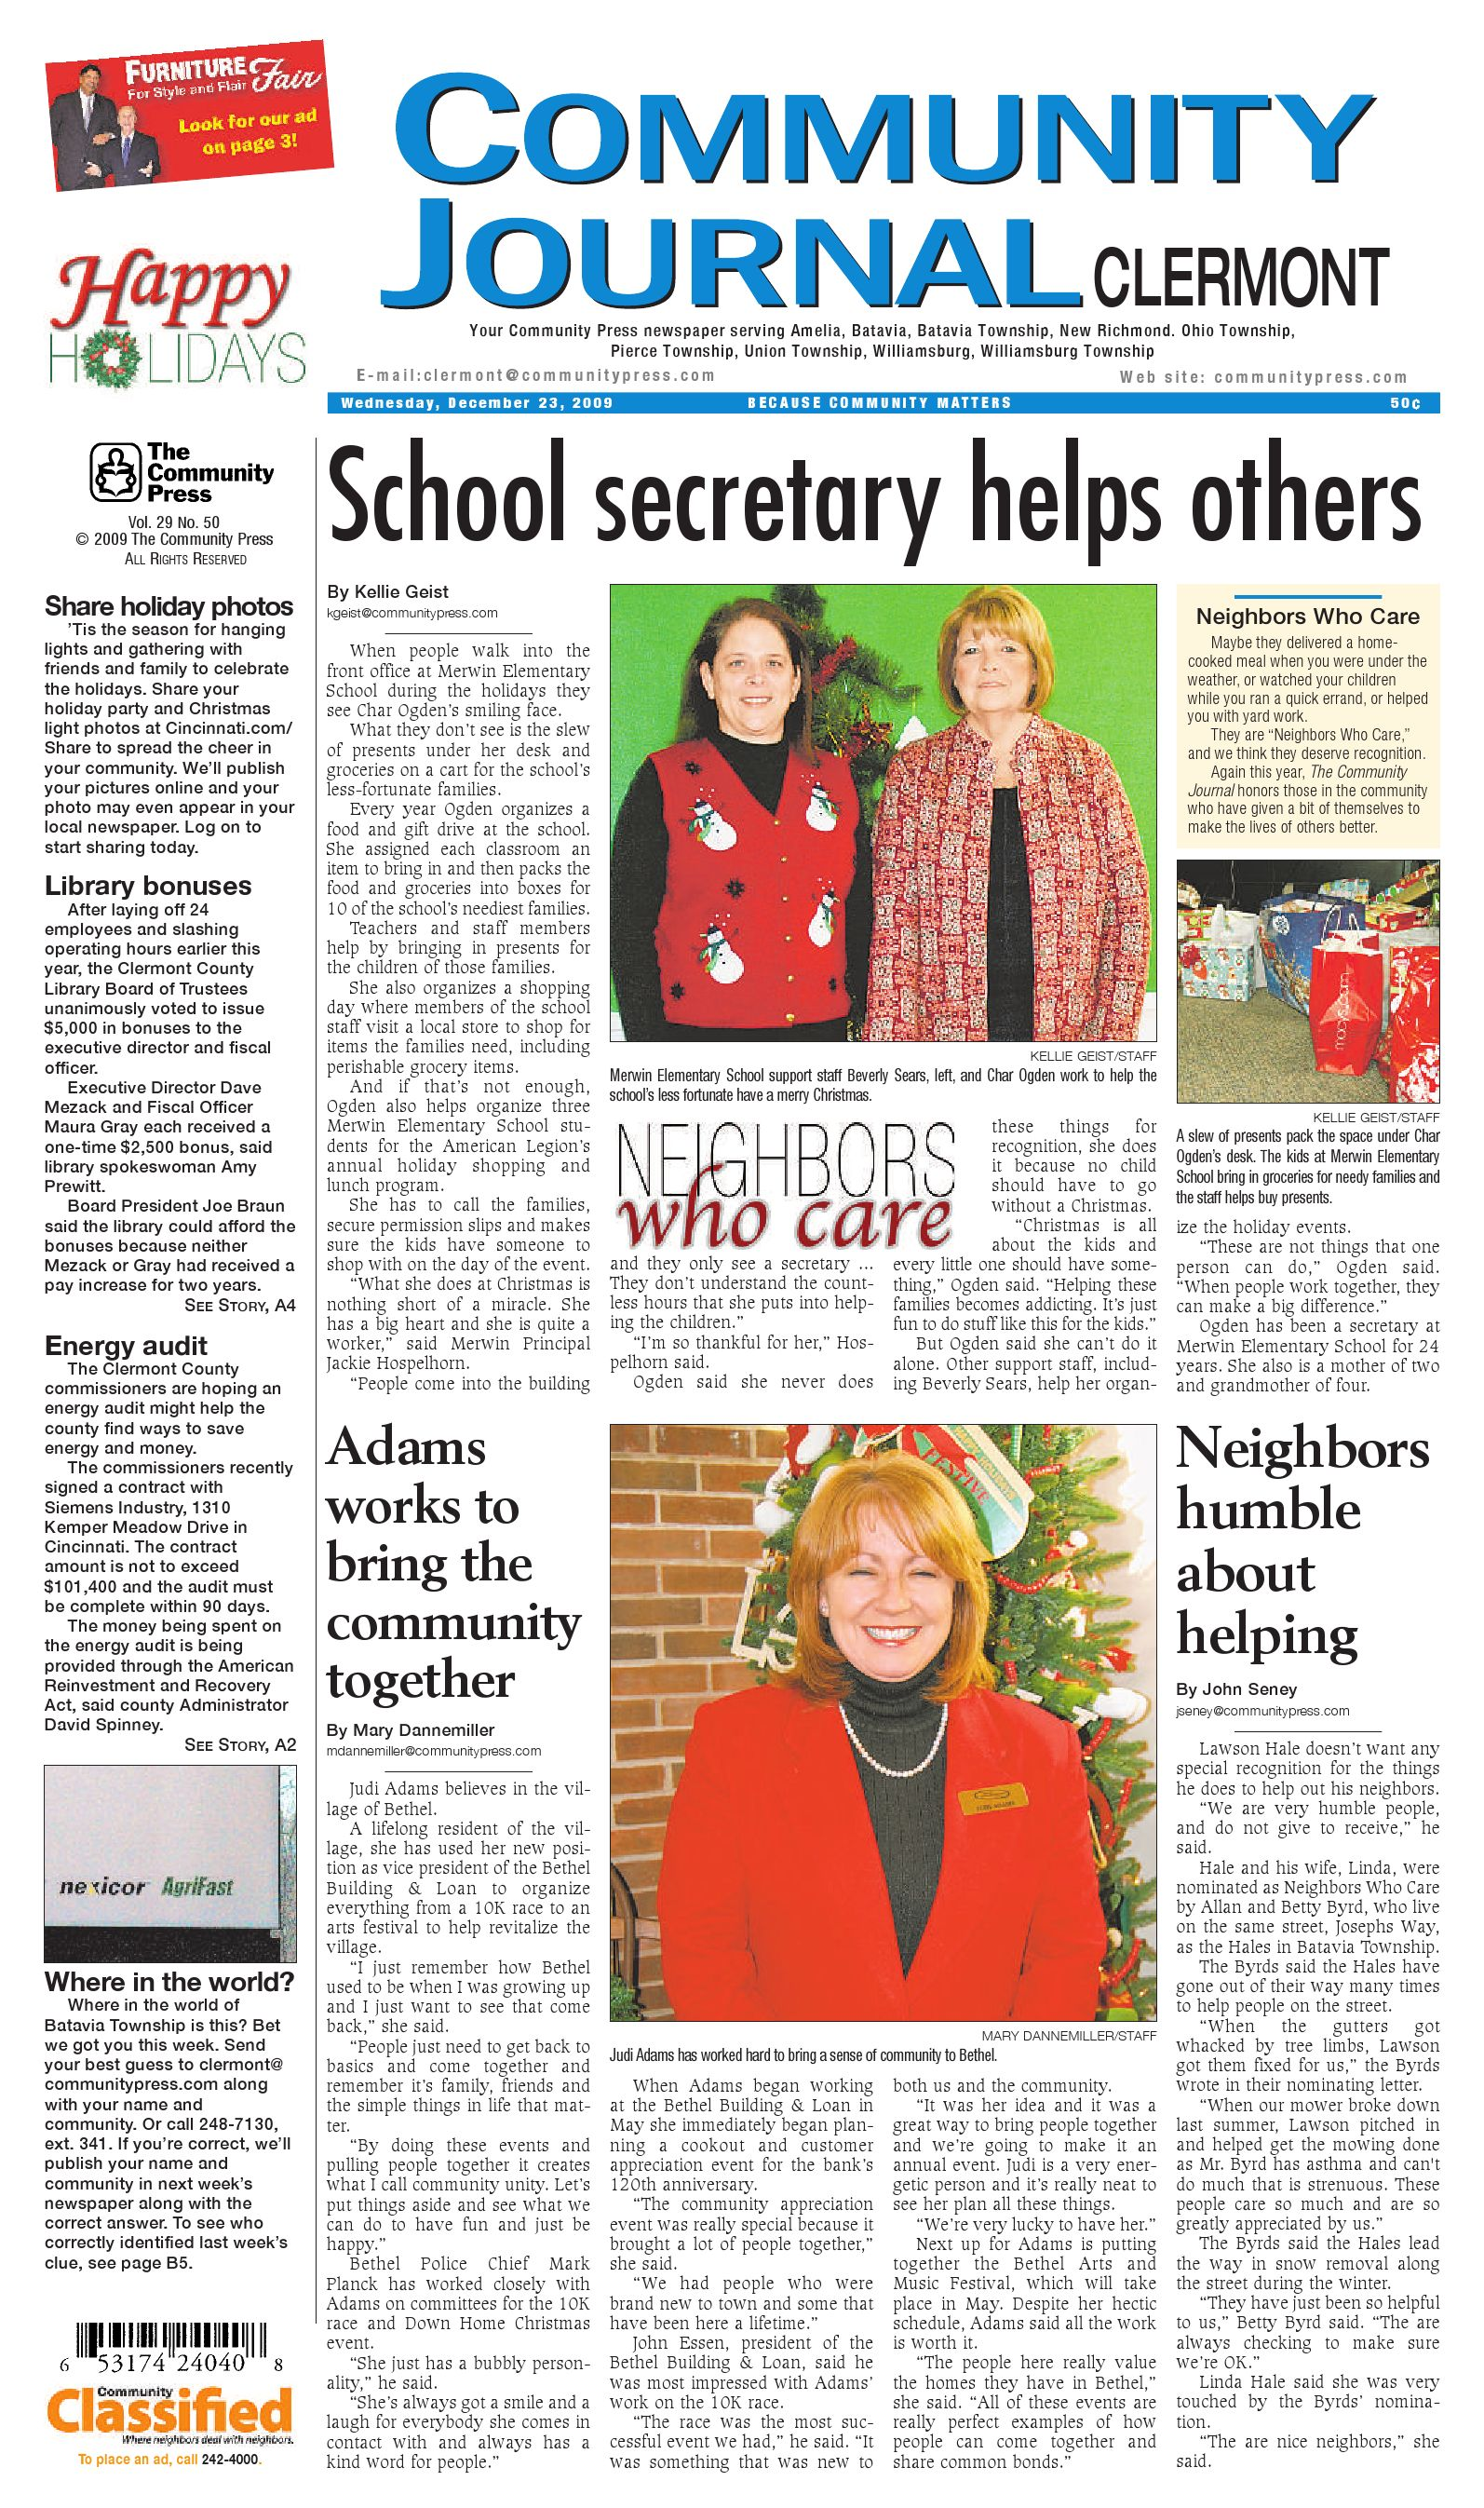 community-journal-clermont-122309 by Enquirer Media - issuu 16062a2380